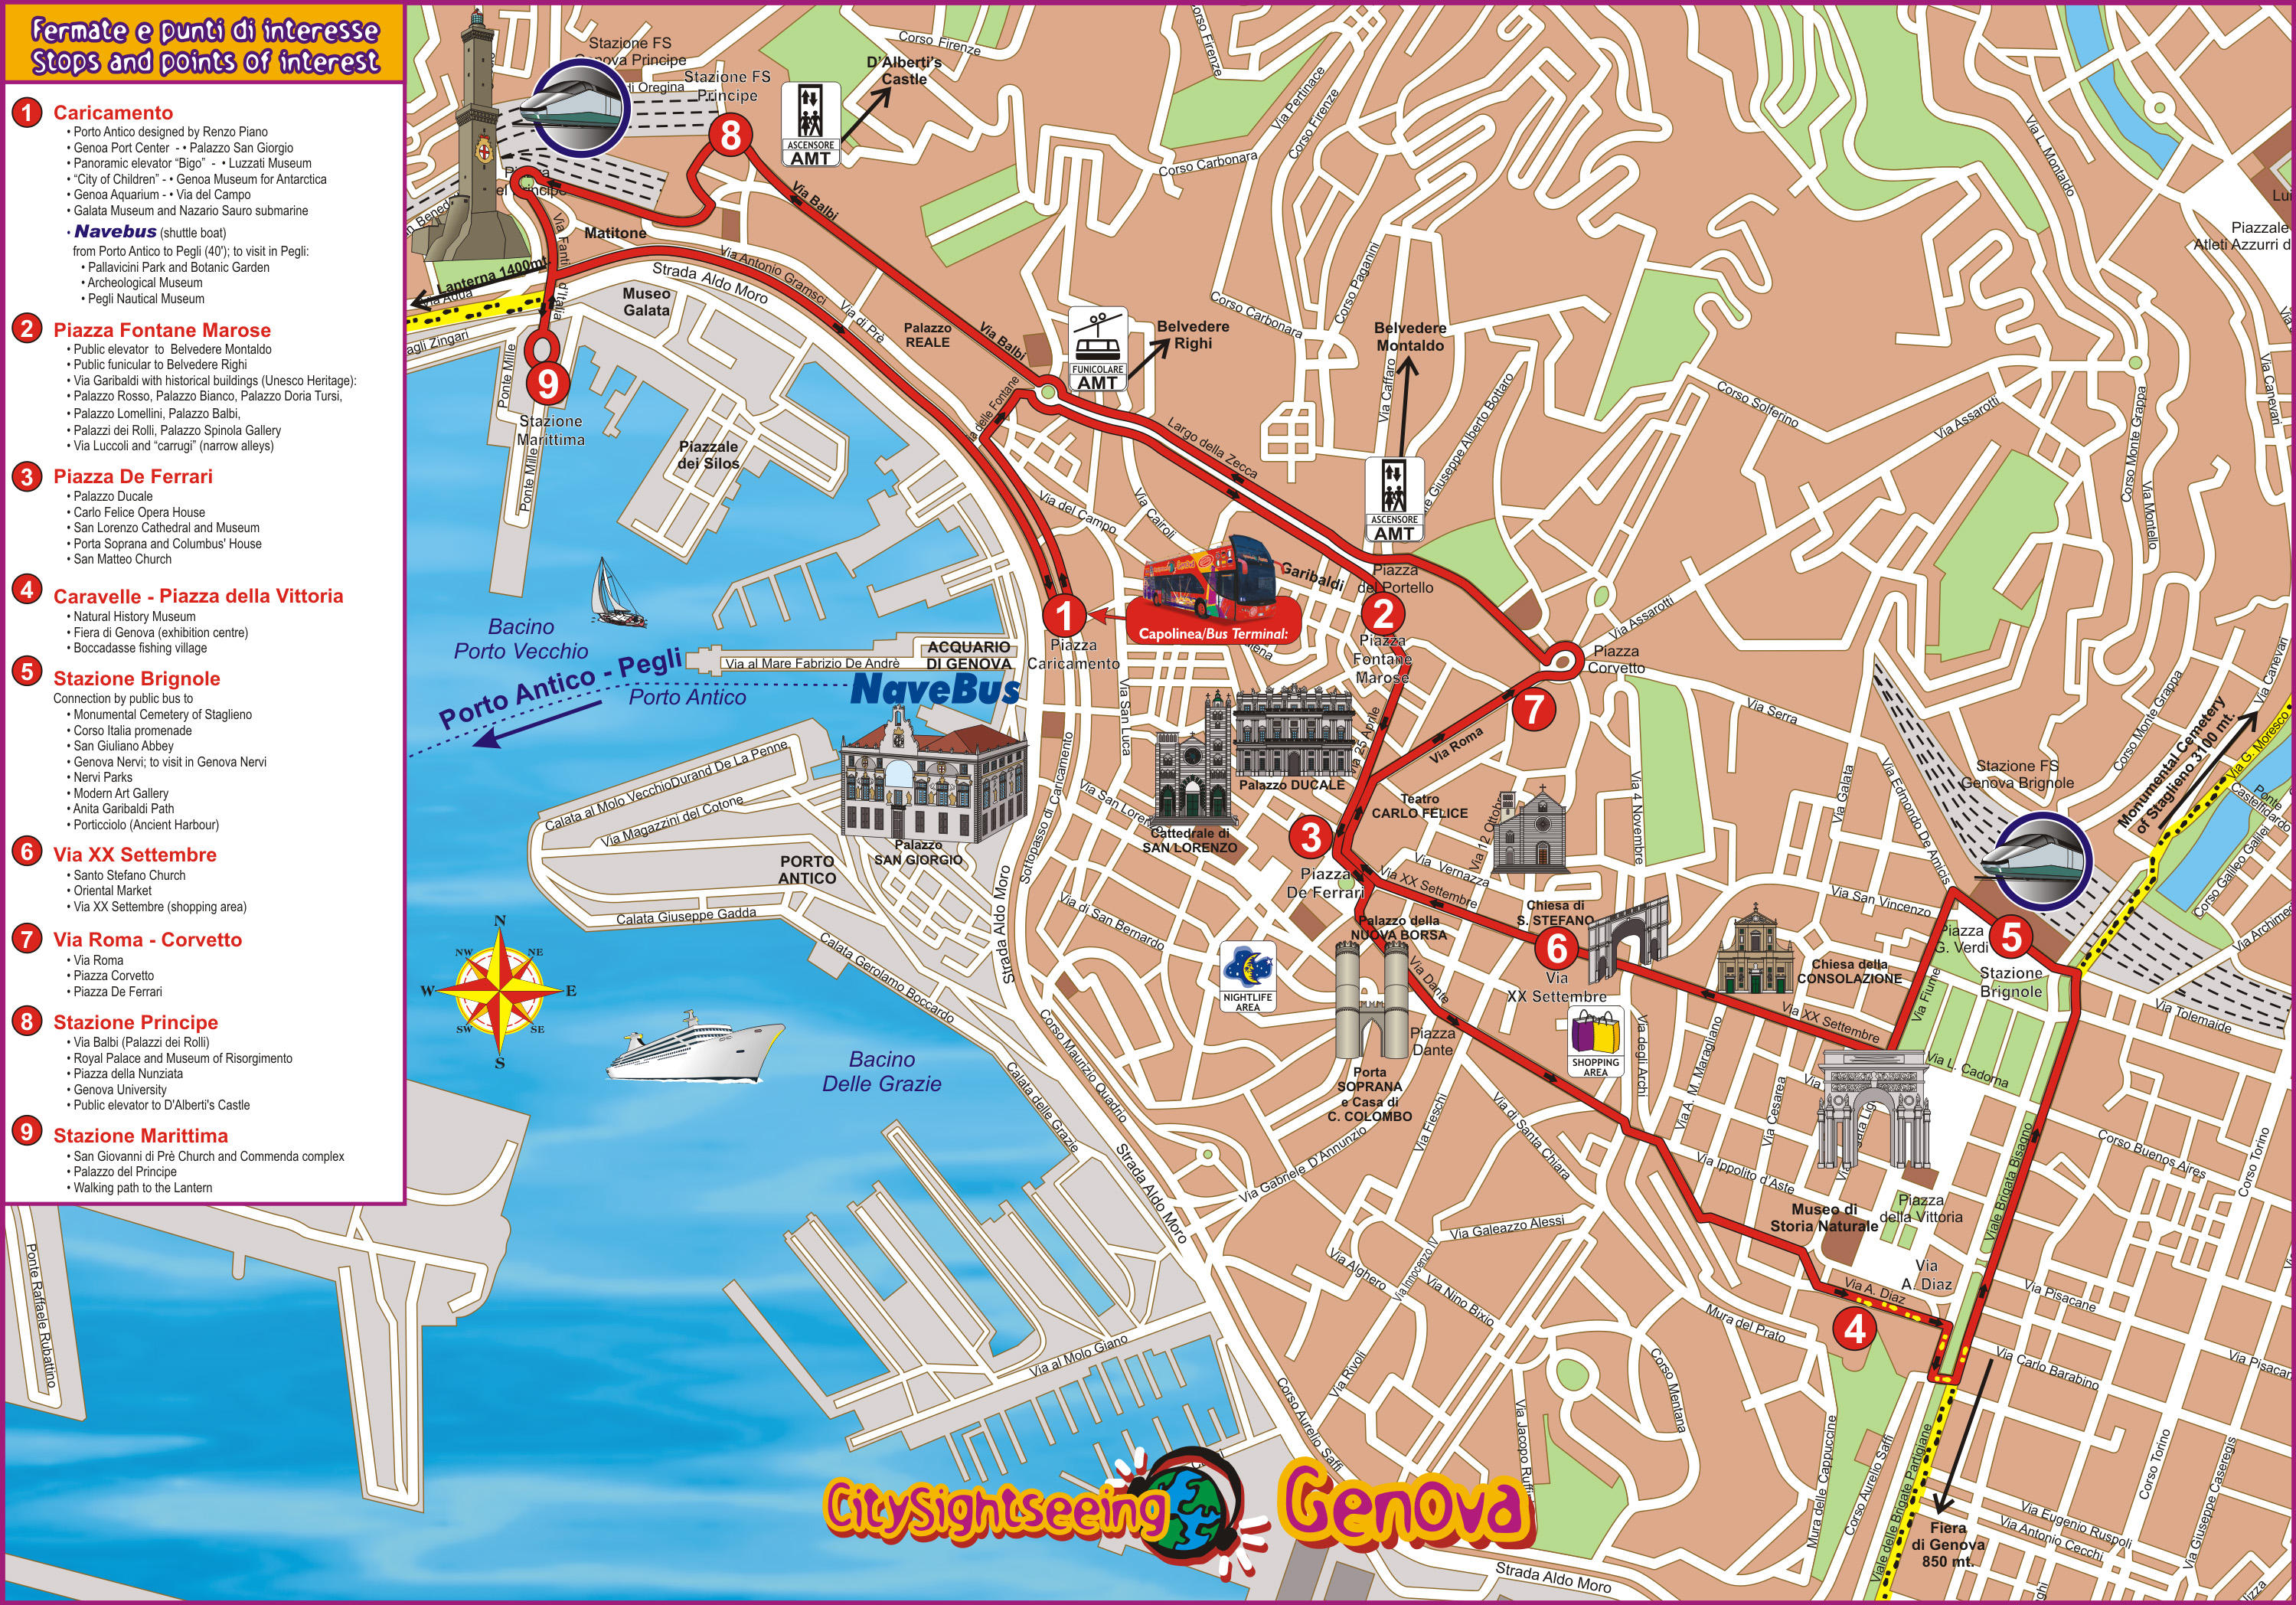 Genoa City HopOn HopOff Tour in Italy Lonely Planet